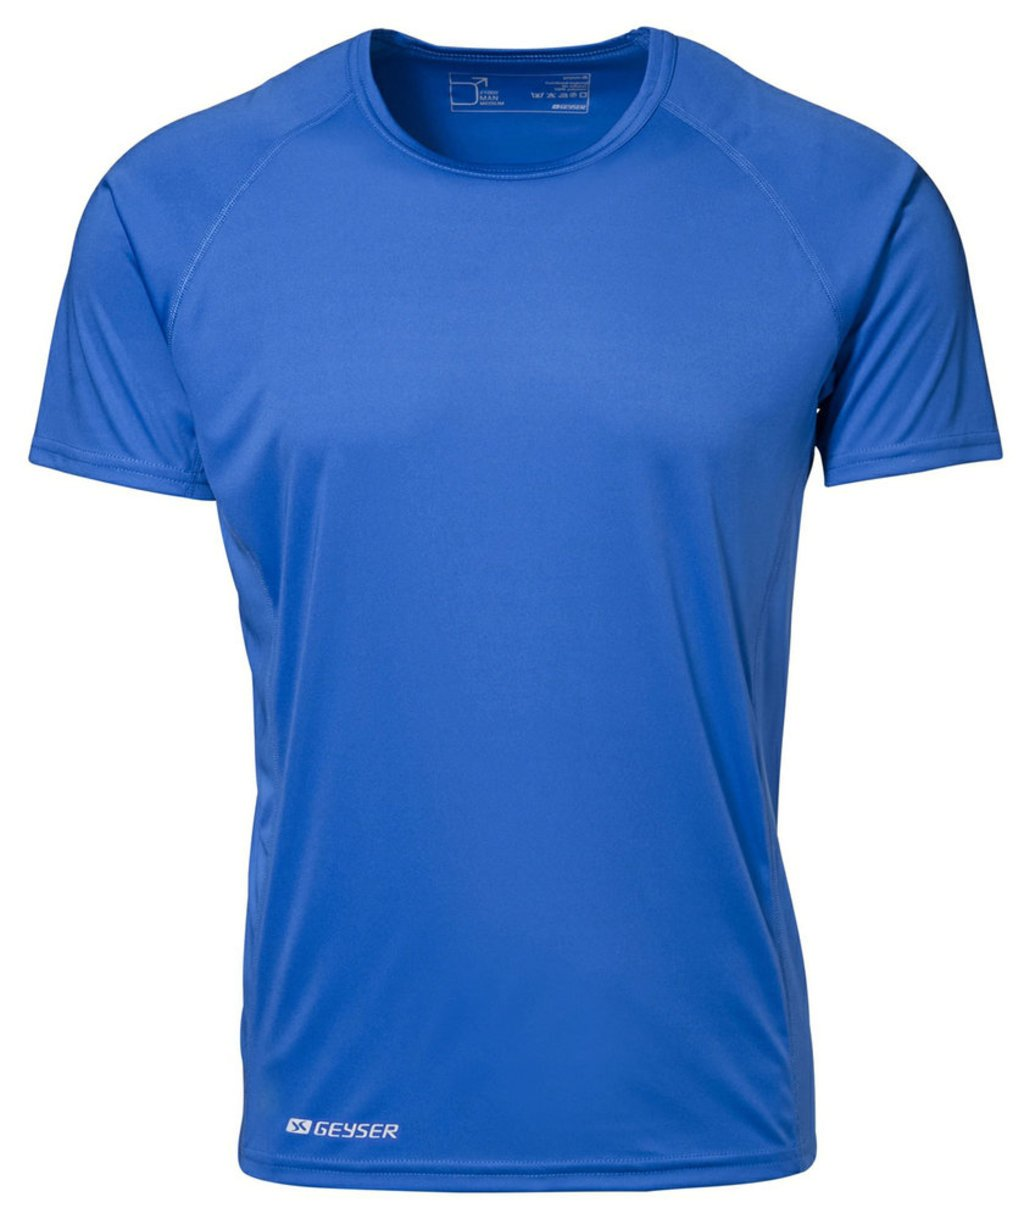 GEYSER Tränings T-shirt Man Active, Royal Blue